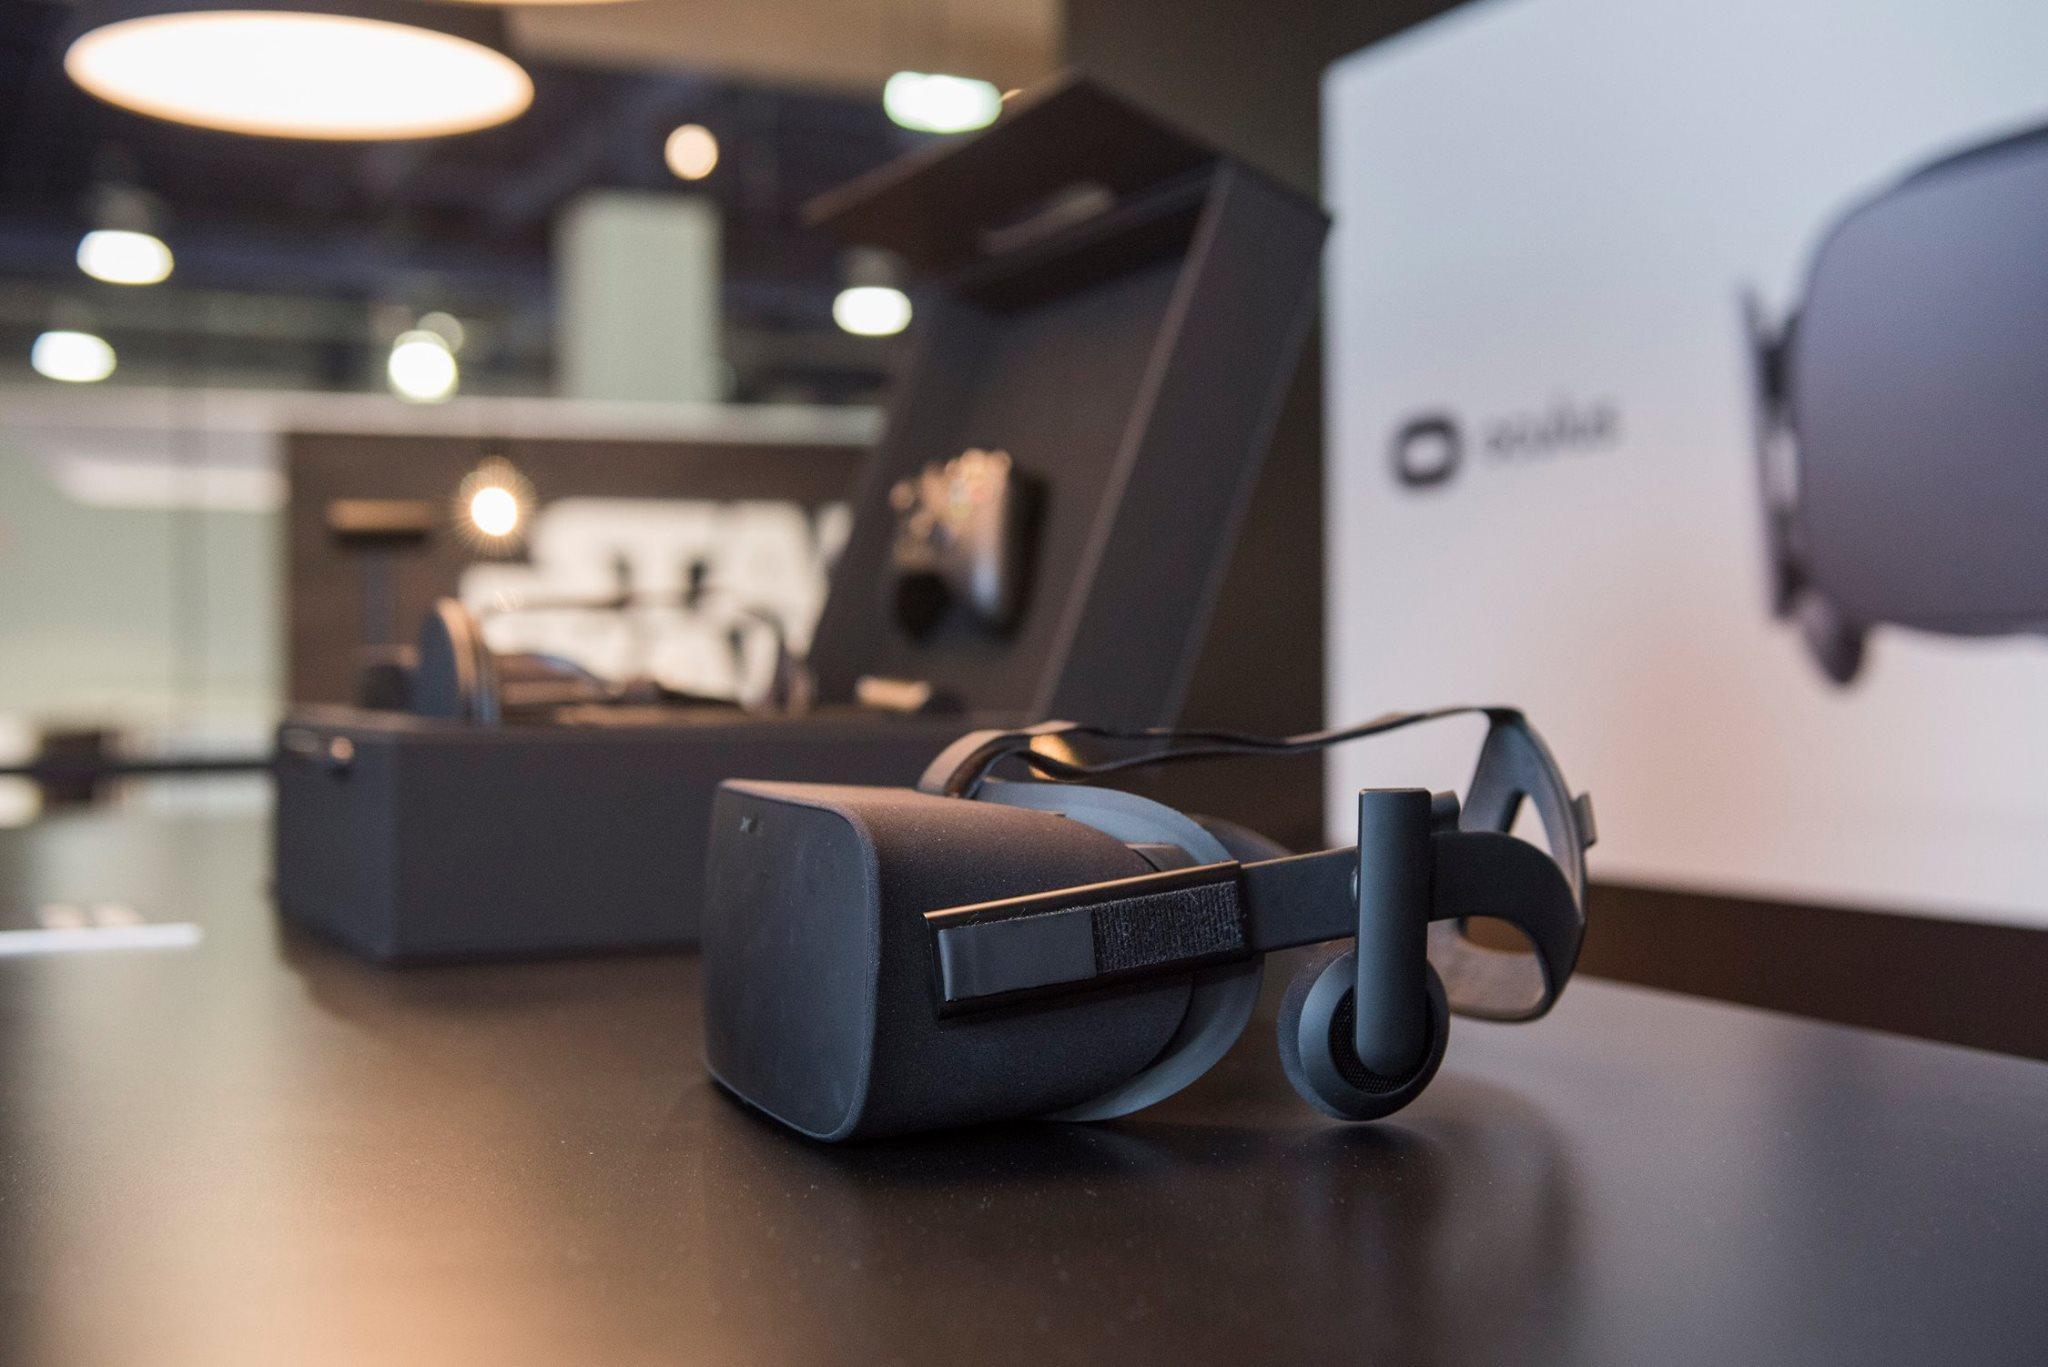 NYU is one of the first schools in the nation to offer classes on Virtual Reality gadgets such as the Oculus Rift.